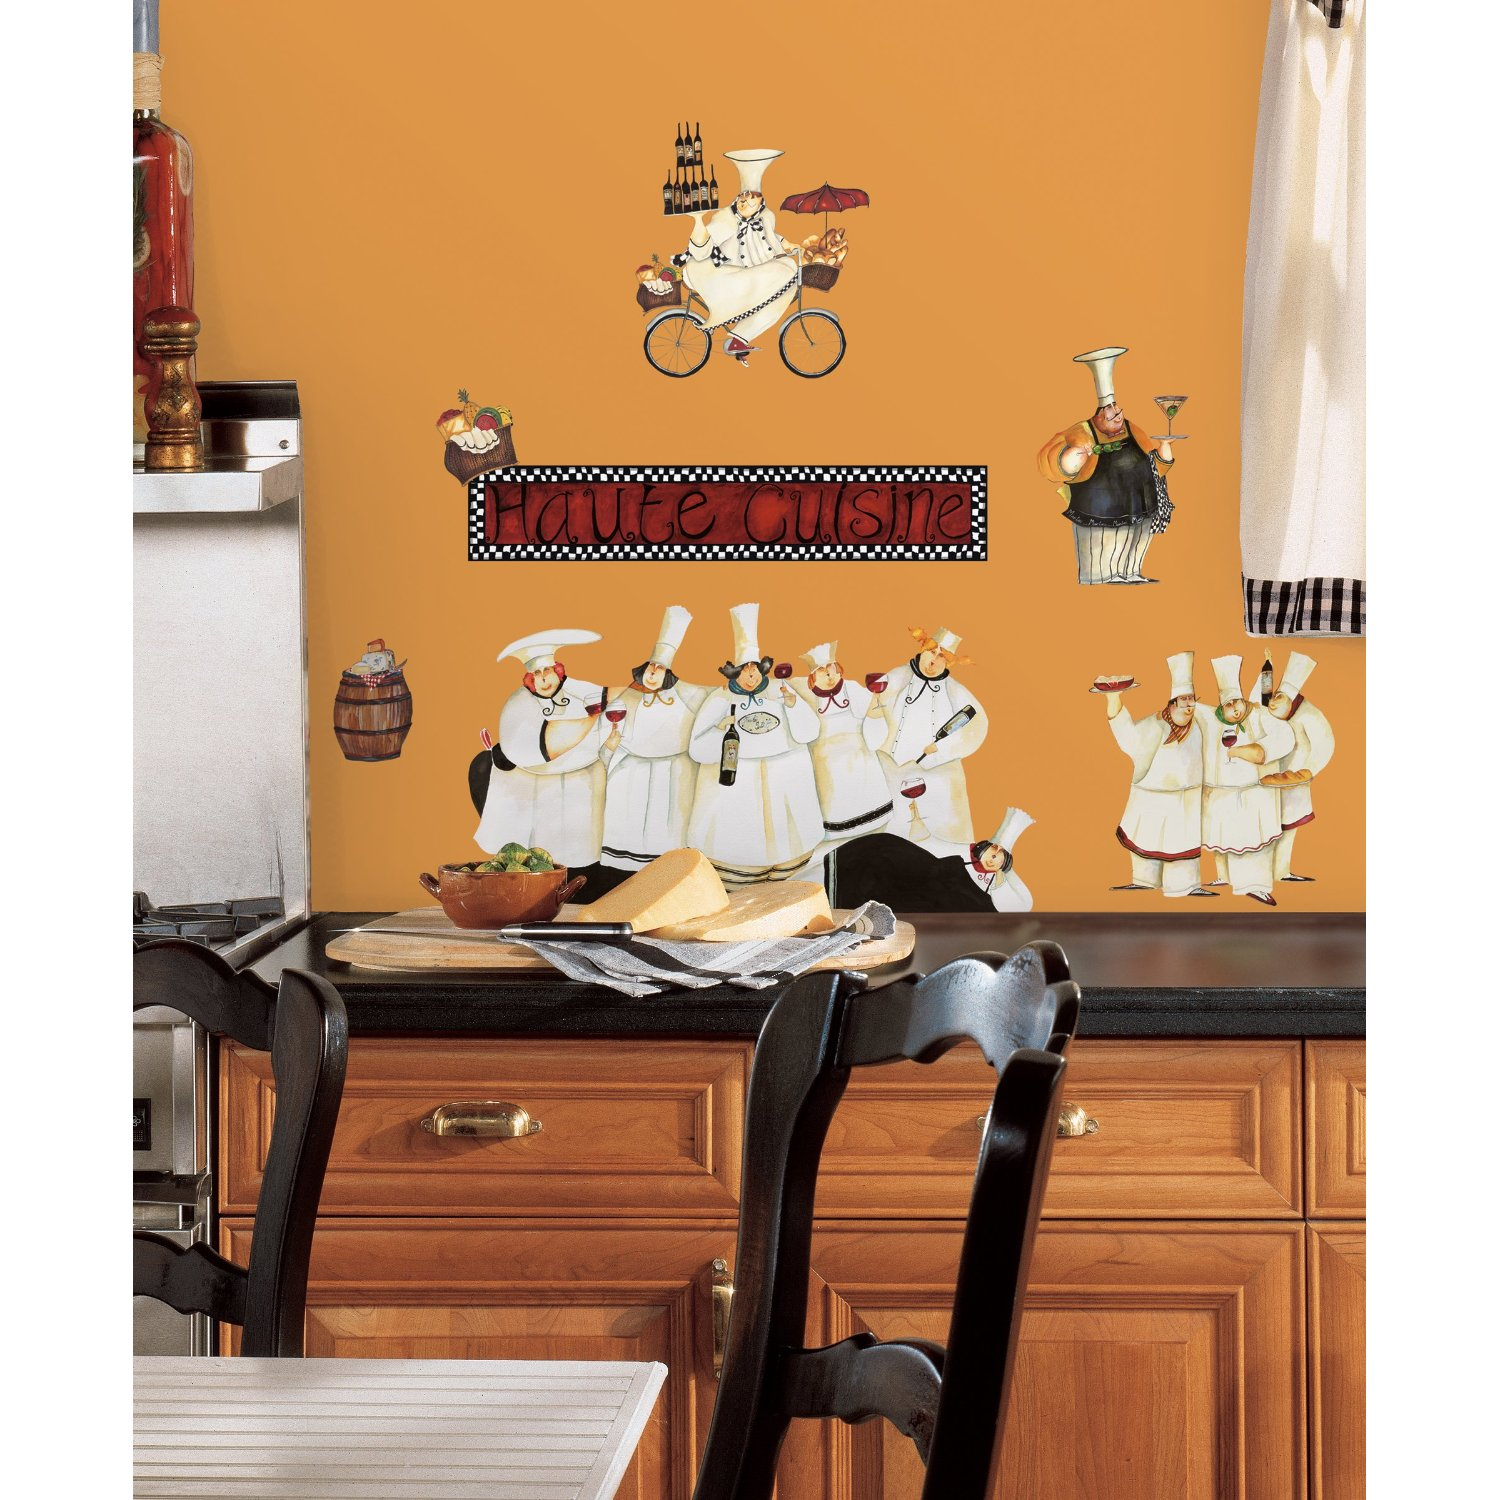 Kitchen world the best for your kitchen decorate your kitchen with fat chef wall decals - Kitchen wall decorating ideas ...